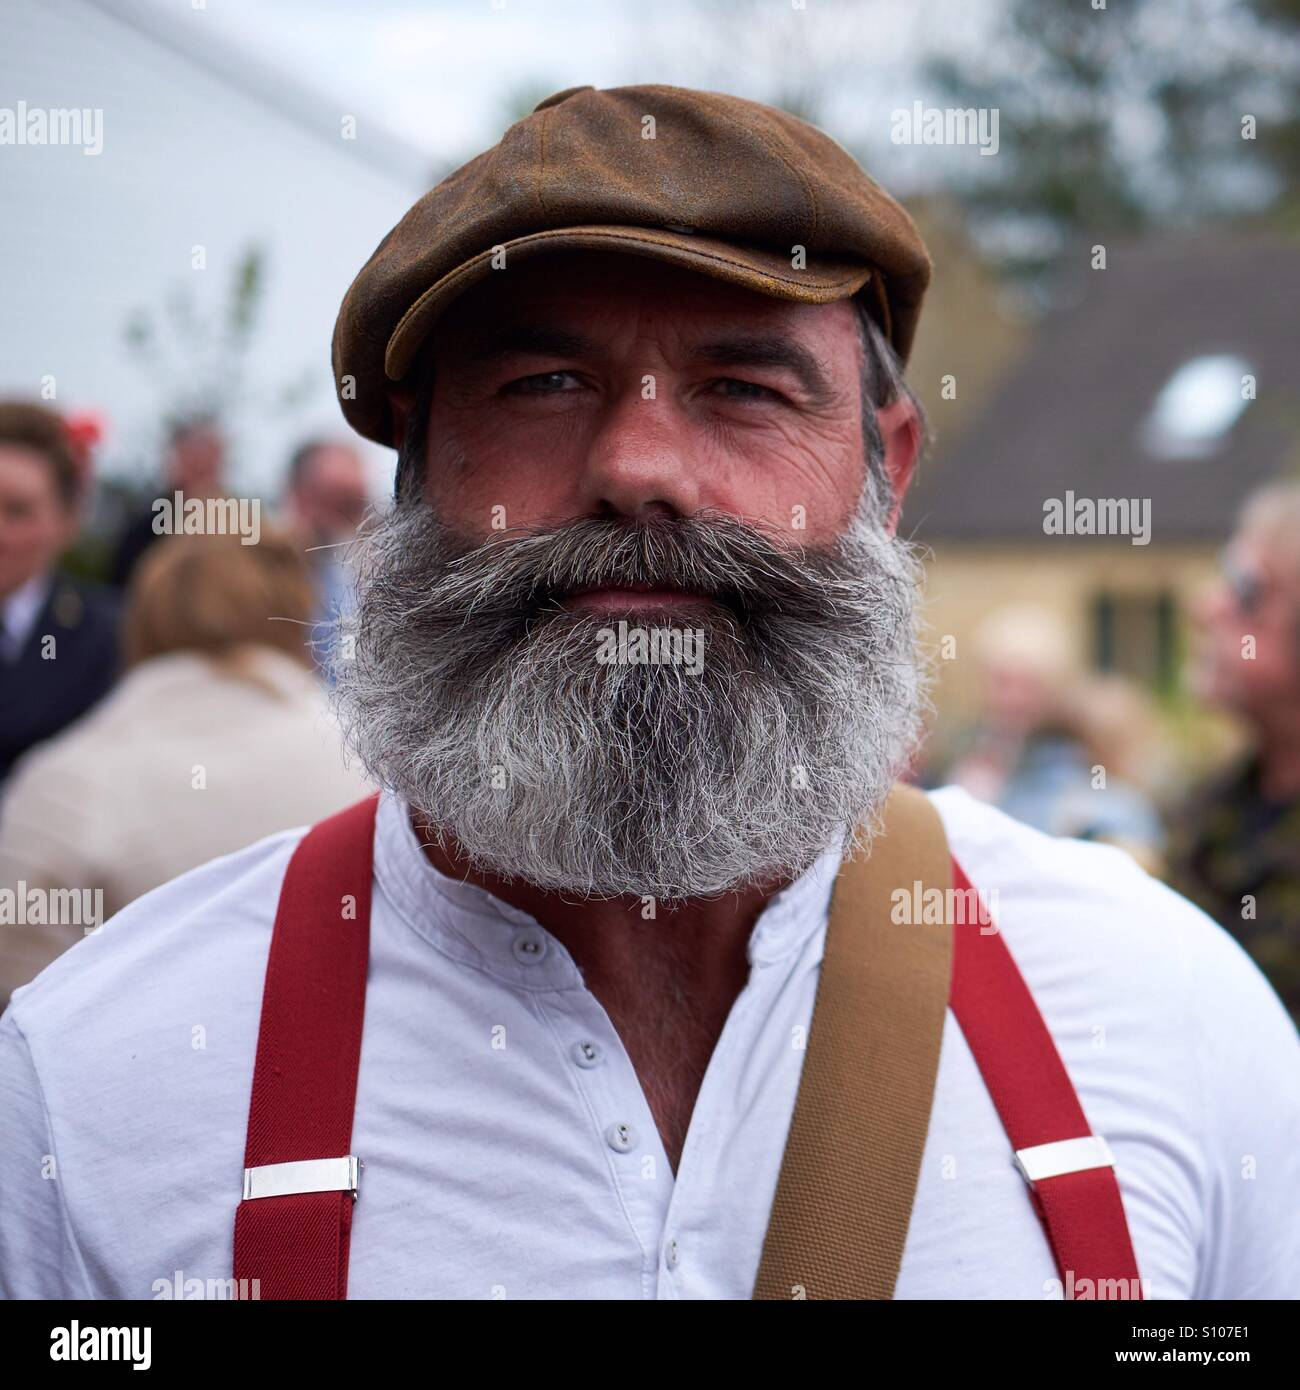 Portrait of a man with a substantial greying beard and flat cap wearing a grandad shirt and red braces. - Stock Image